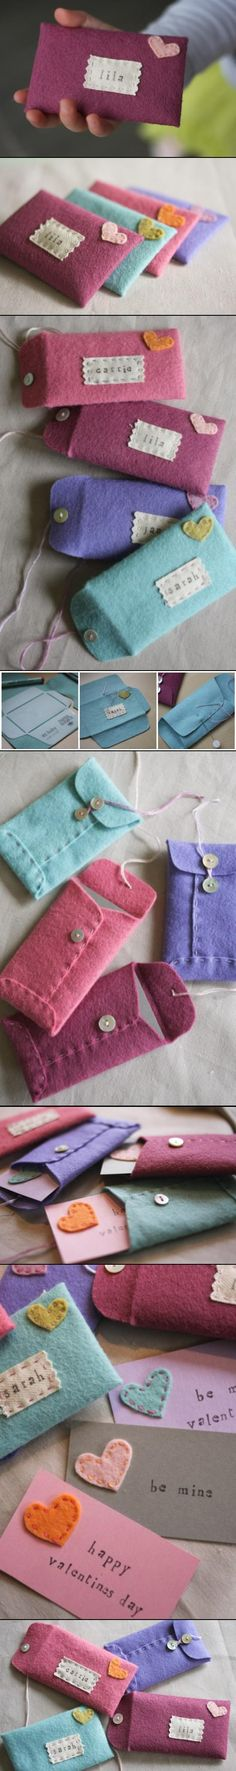 Embroidered Felt Envelopes - Embroidery Embroider Felt Project DIY Envelope